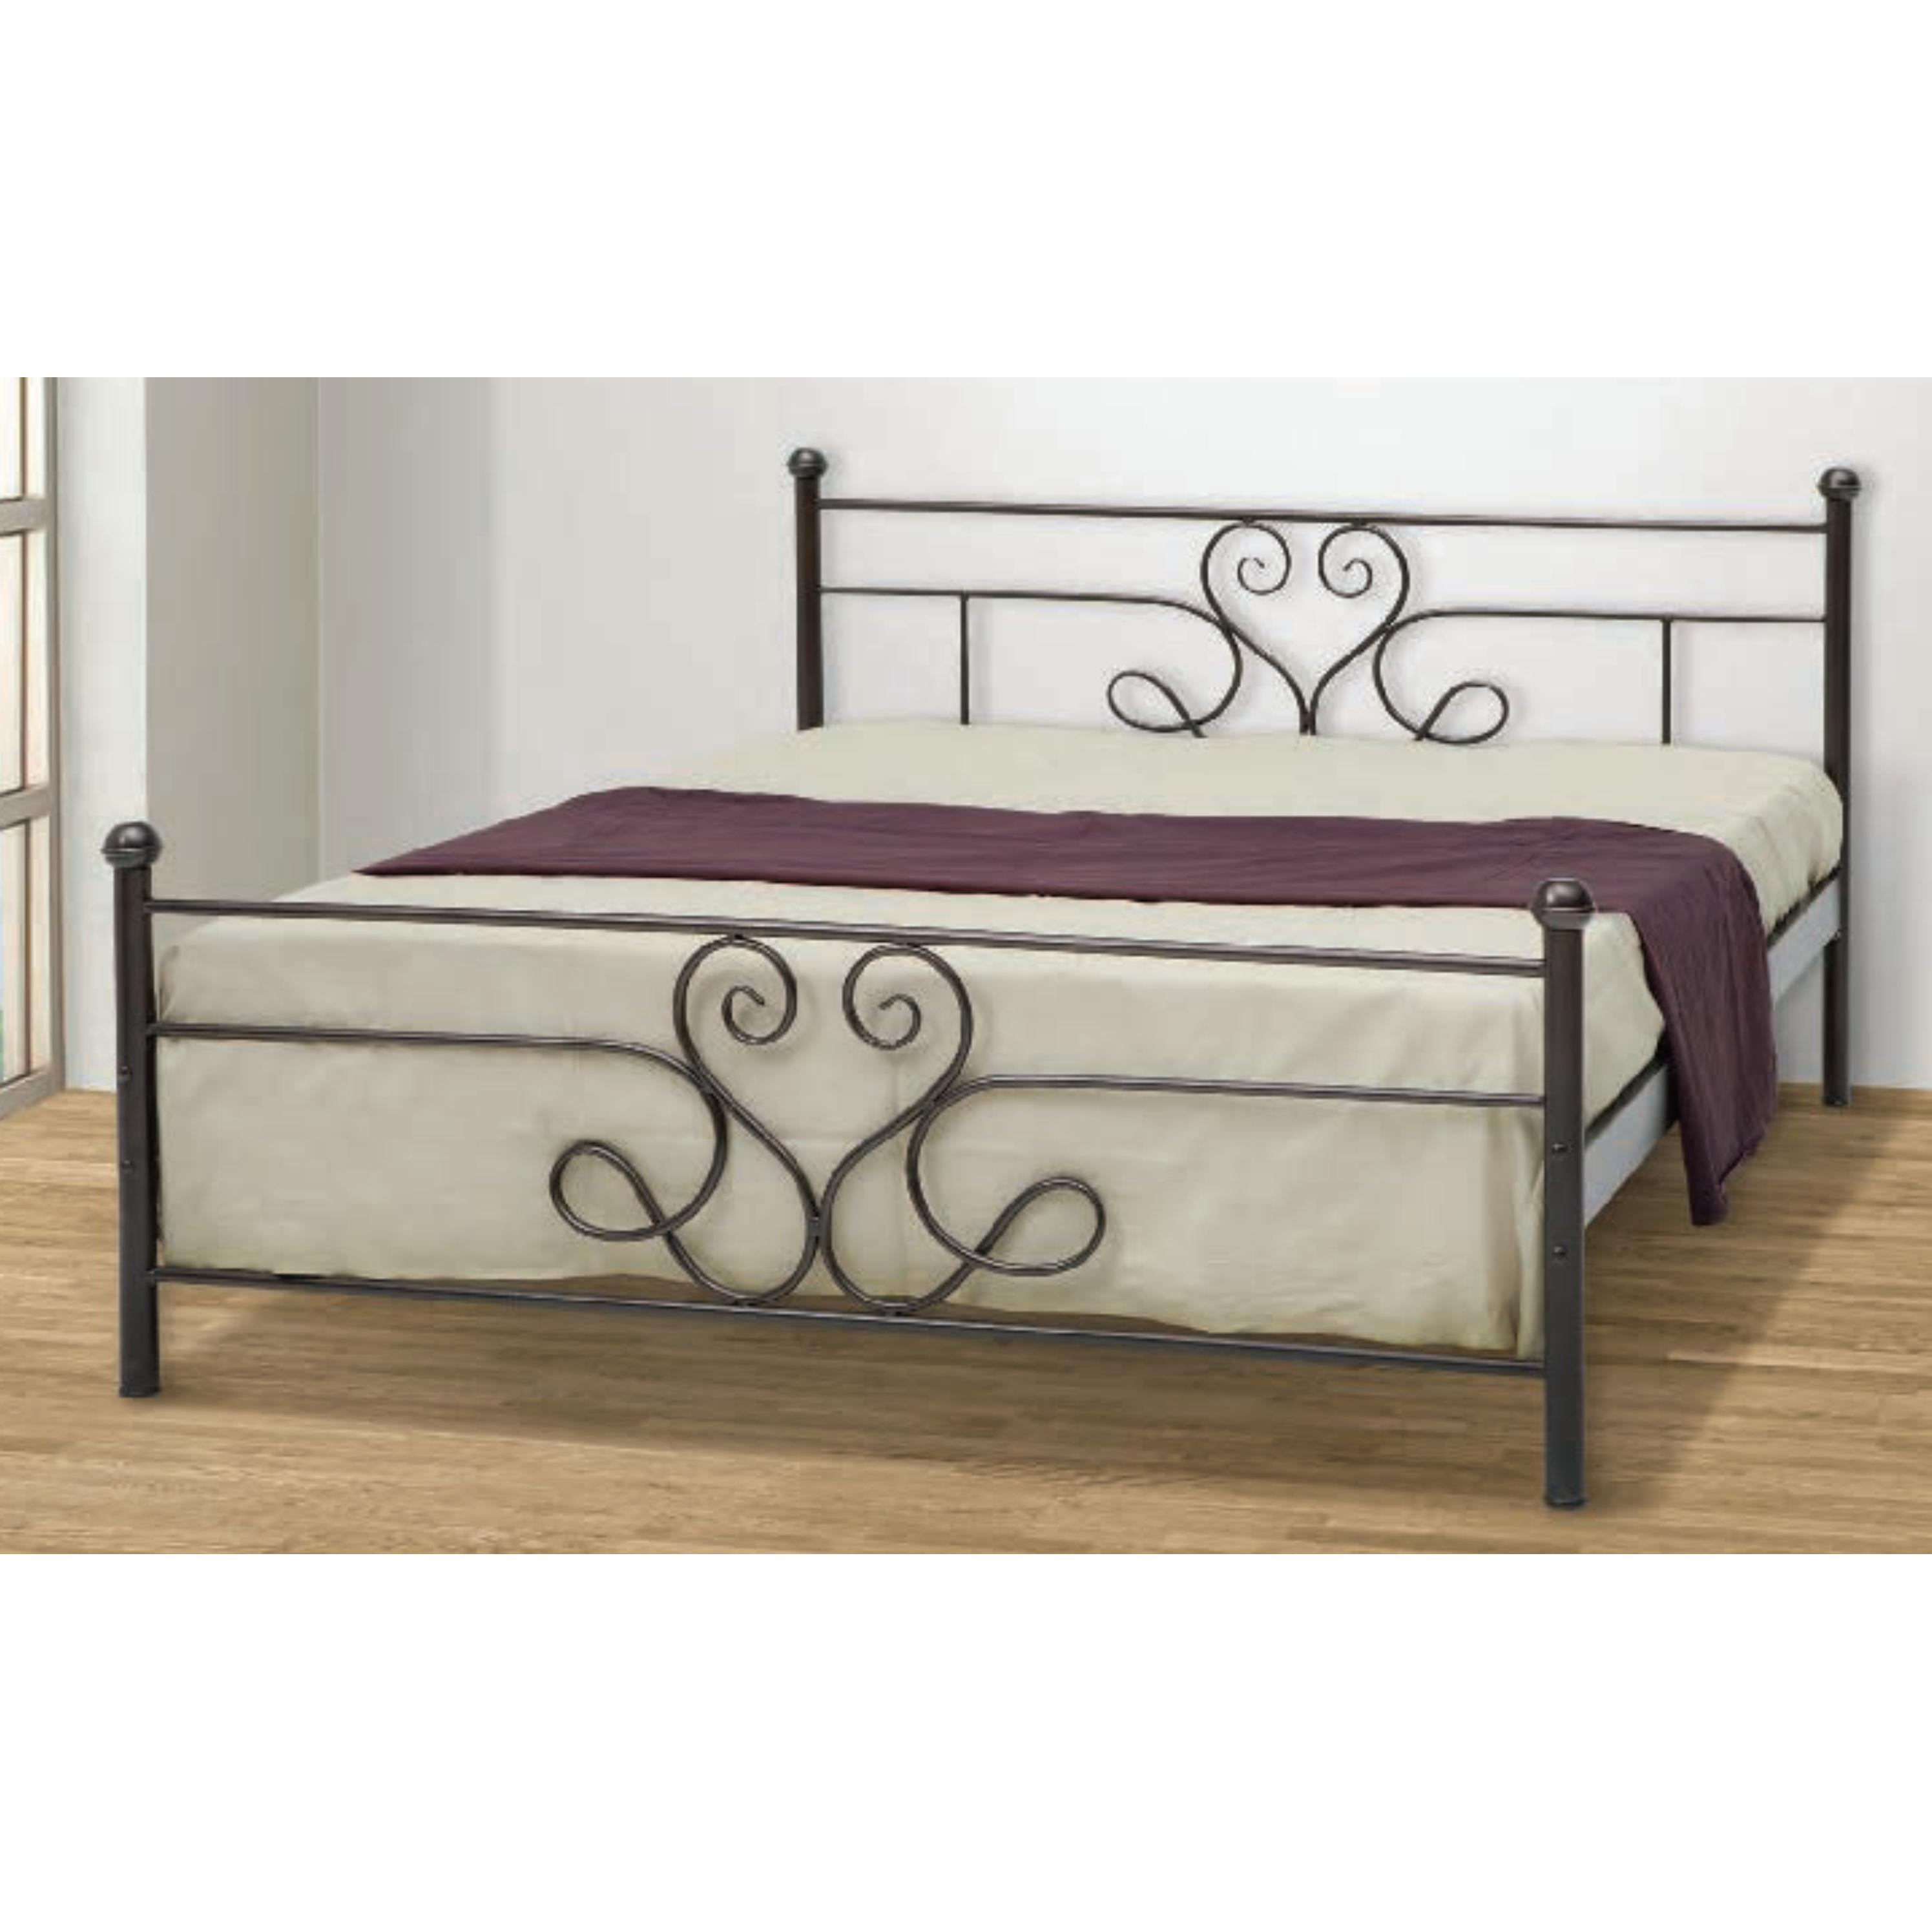 Iron single bed santorini 90x200 cm for Couch 90x200